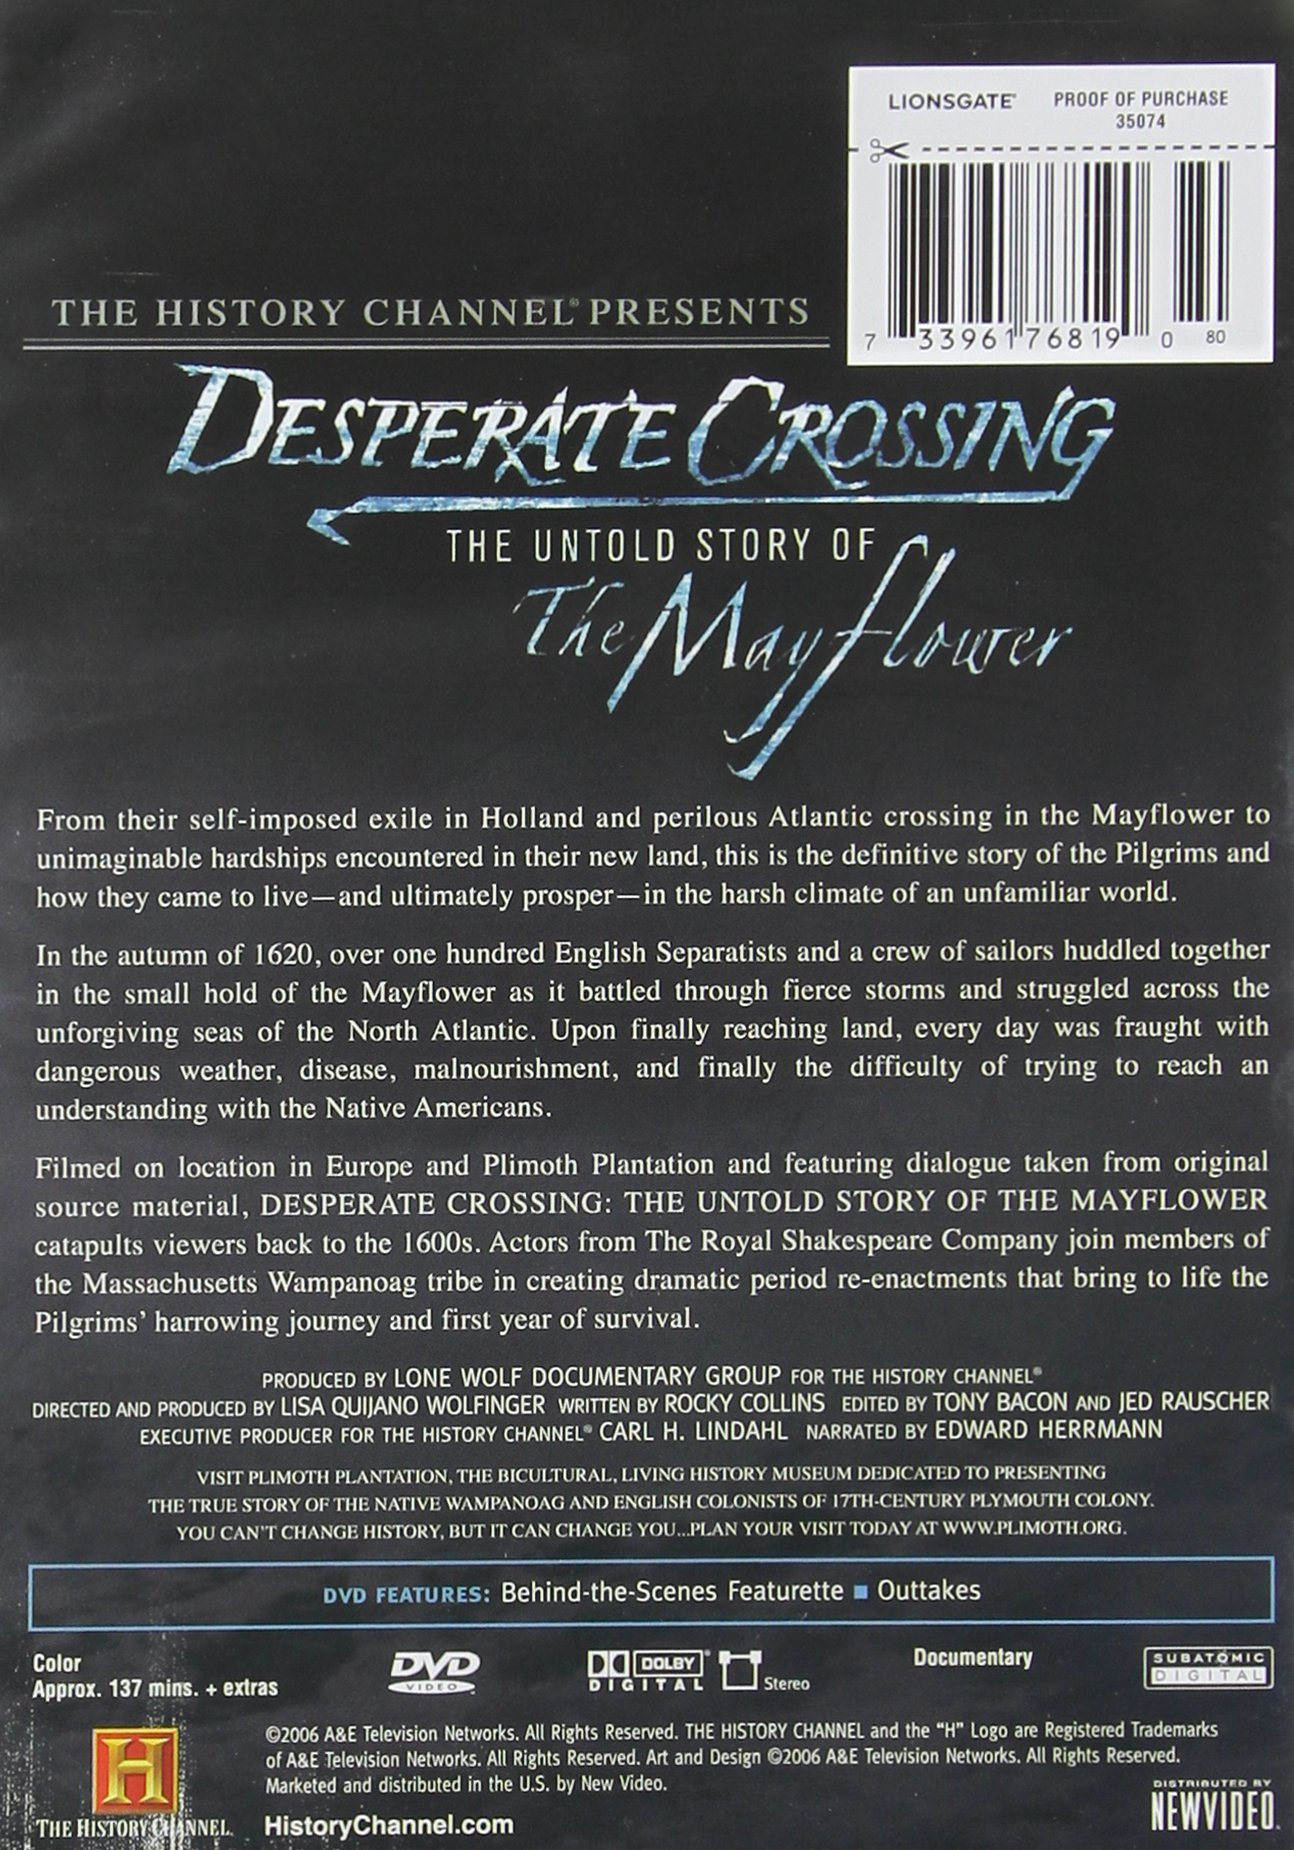 Desperate Crossing: Mayflower by A&E